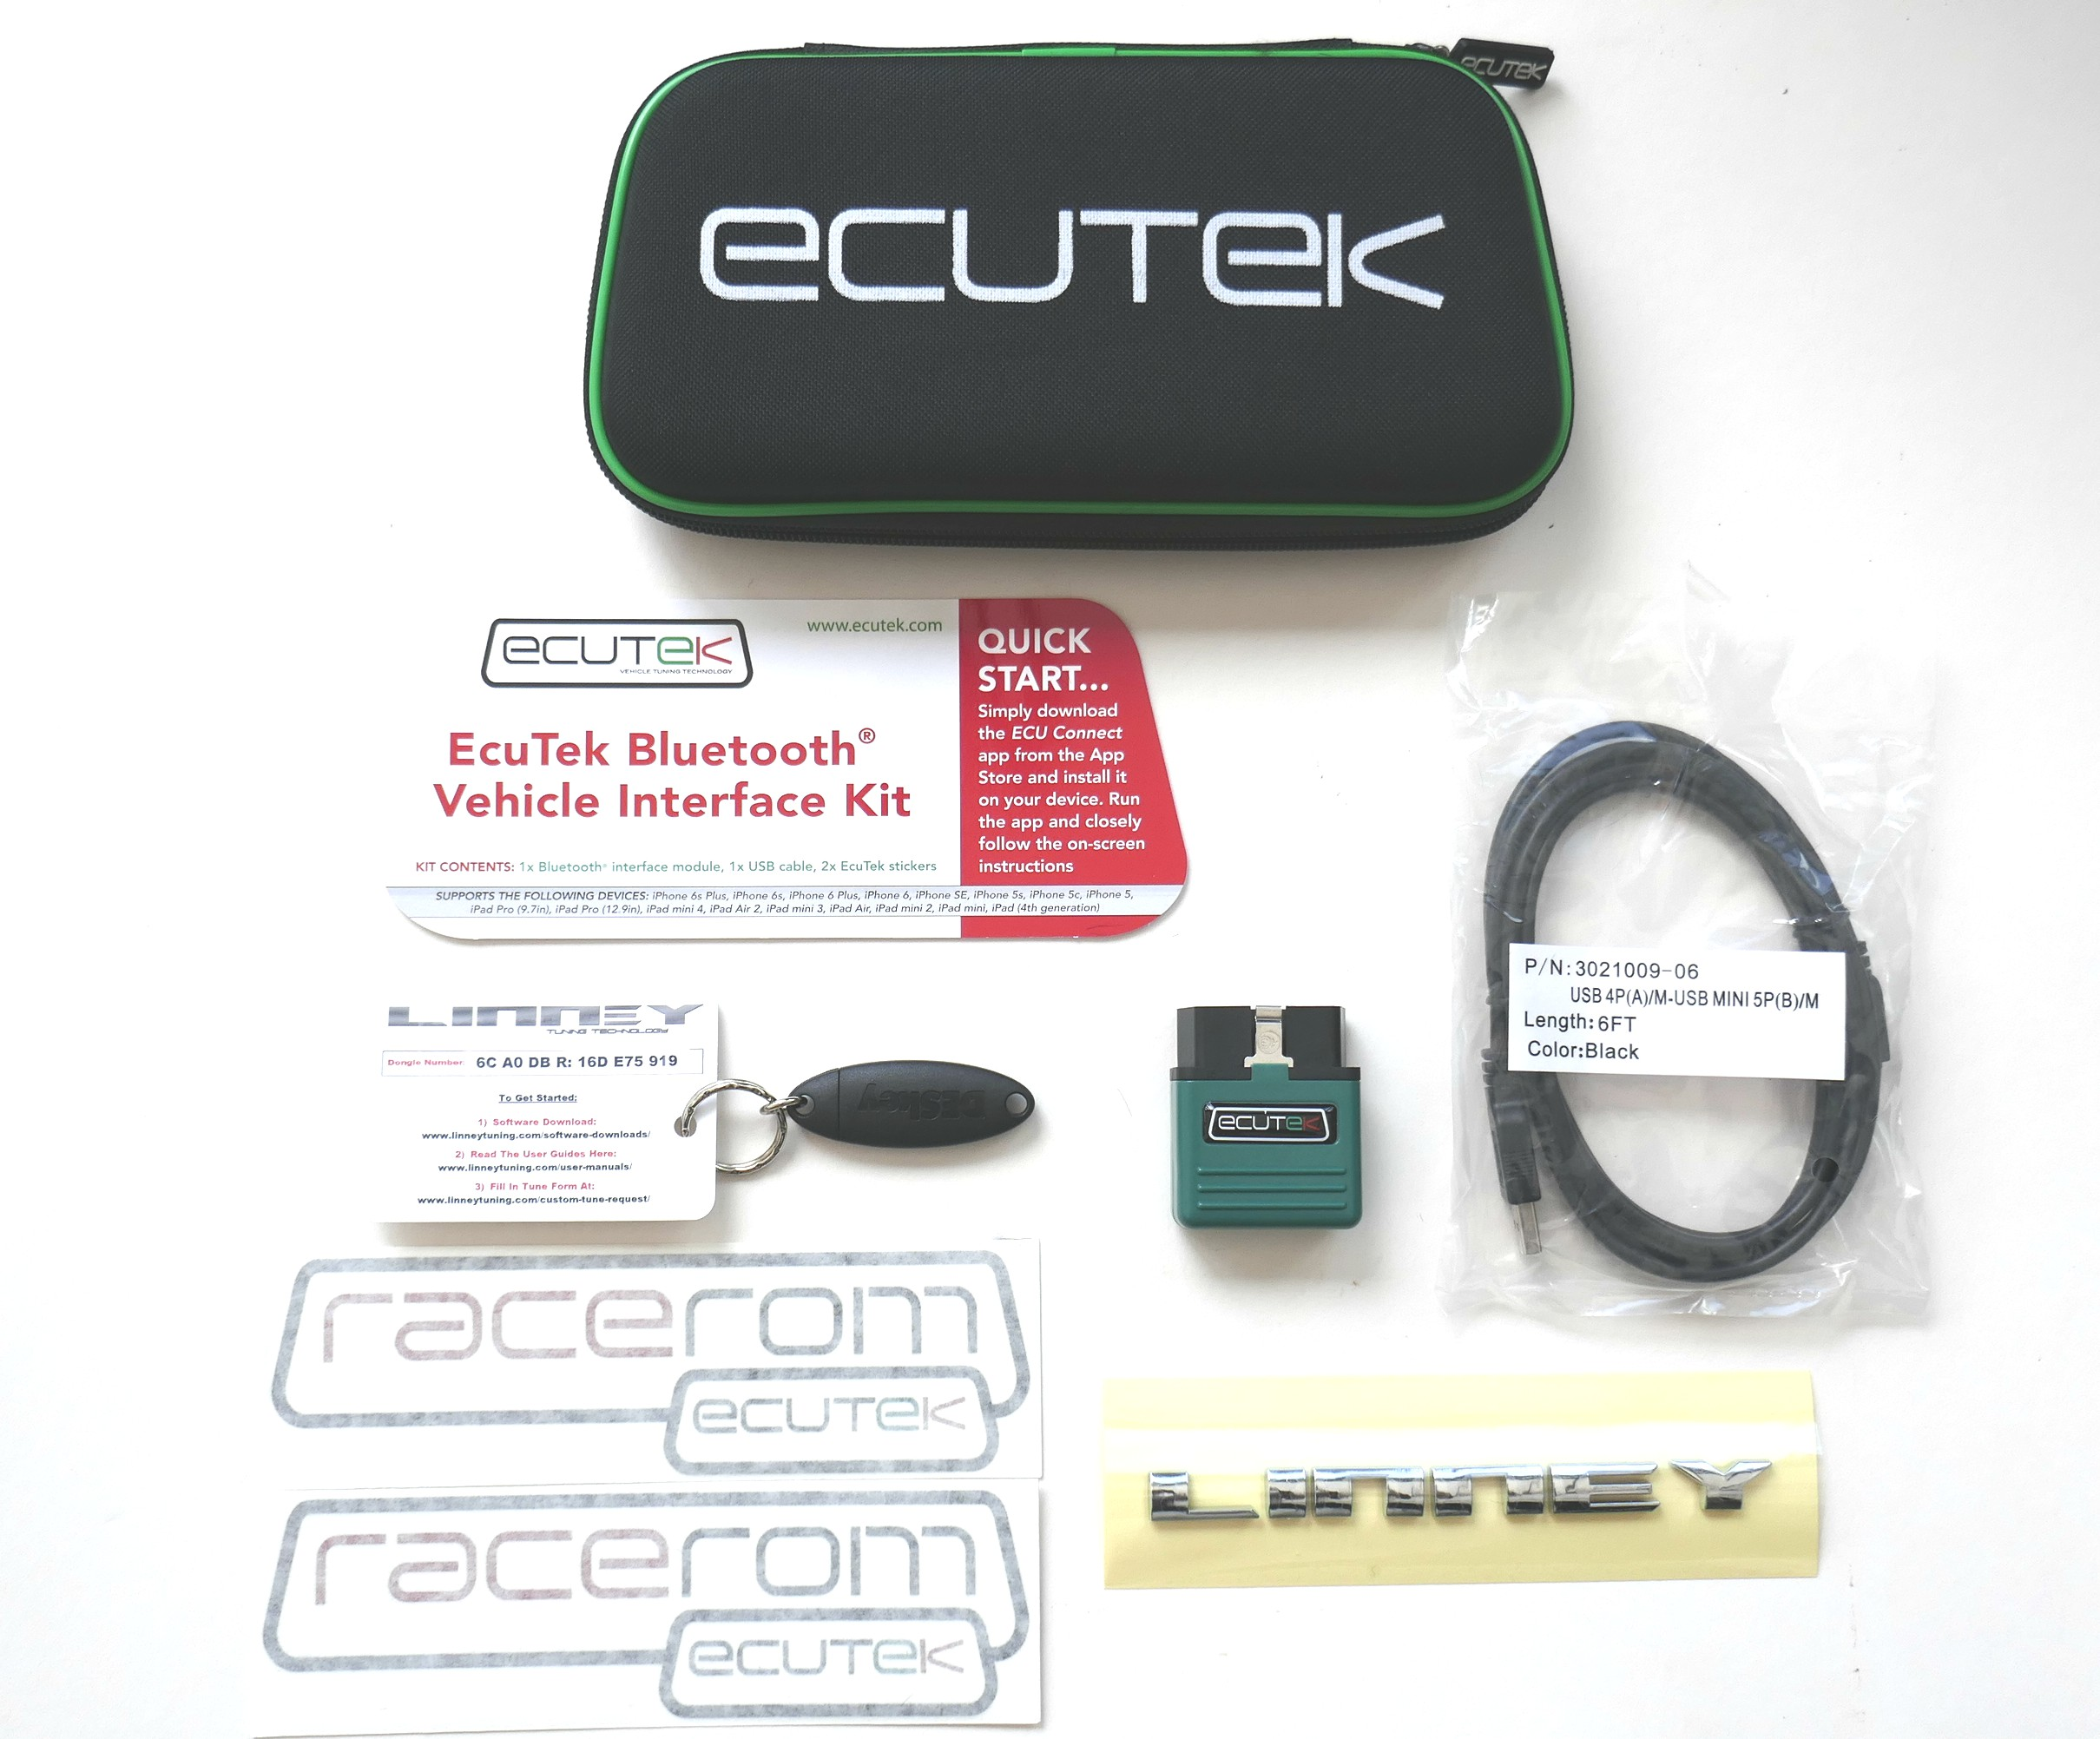 EcuTek Bluetooth Vehicle Interface kit + Dongle Key + 2 Licences